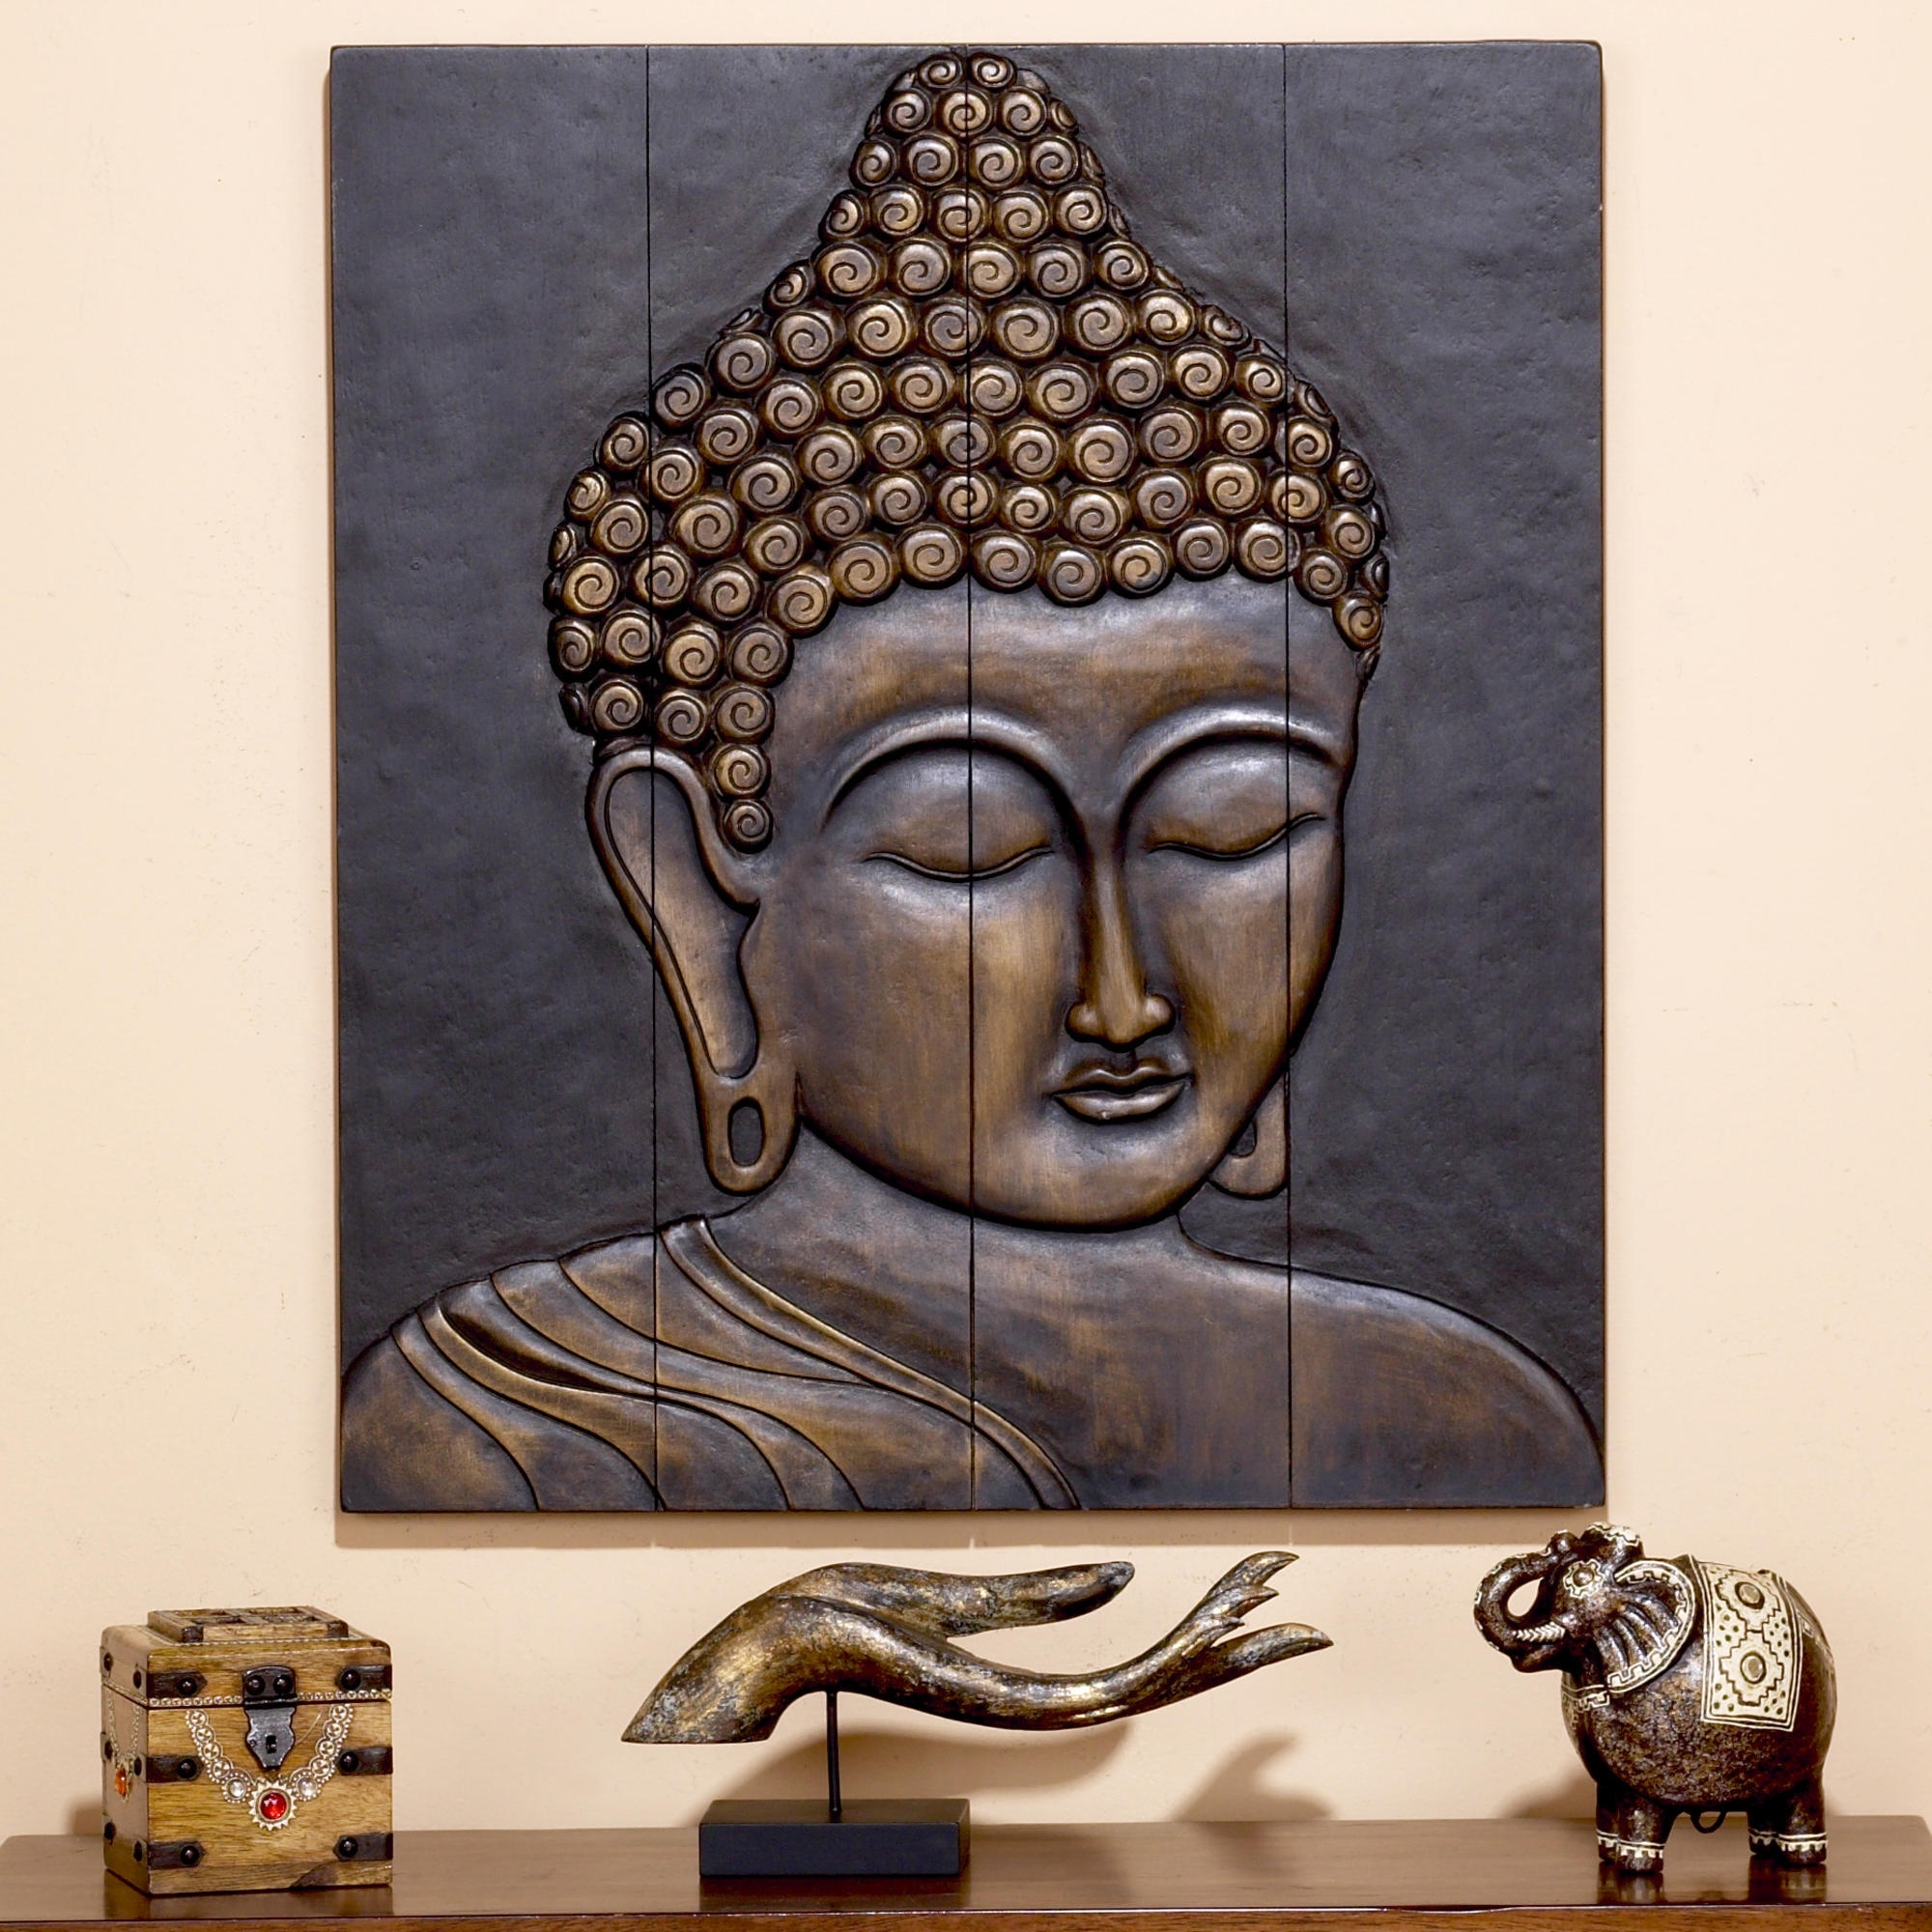 Recent Art For Wall Space Between Windows Over Couch – Love This Buddha Throughout Buddha Wooden Wall Art (View 9 of 15)